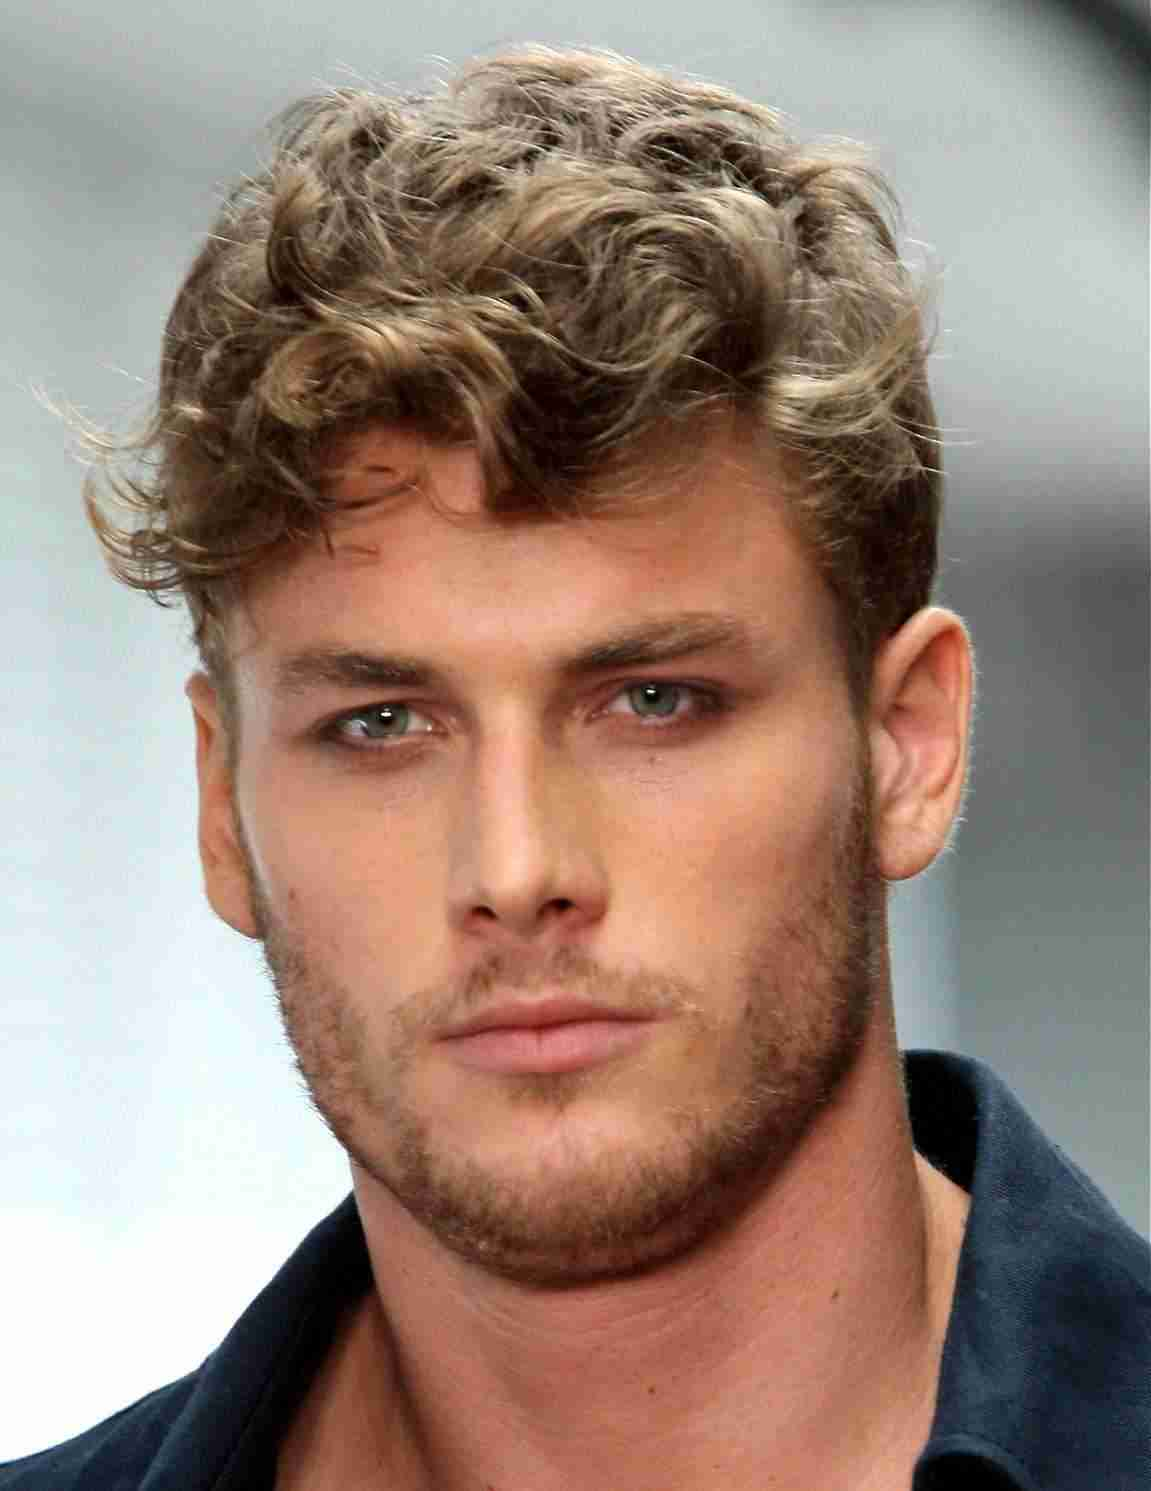 Short Cury Hairstyles For Men With Round Faces 2017 Hairstyles